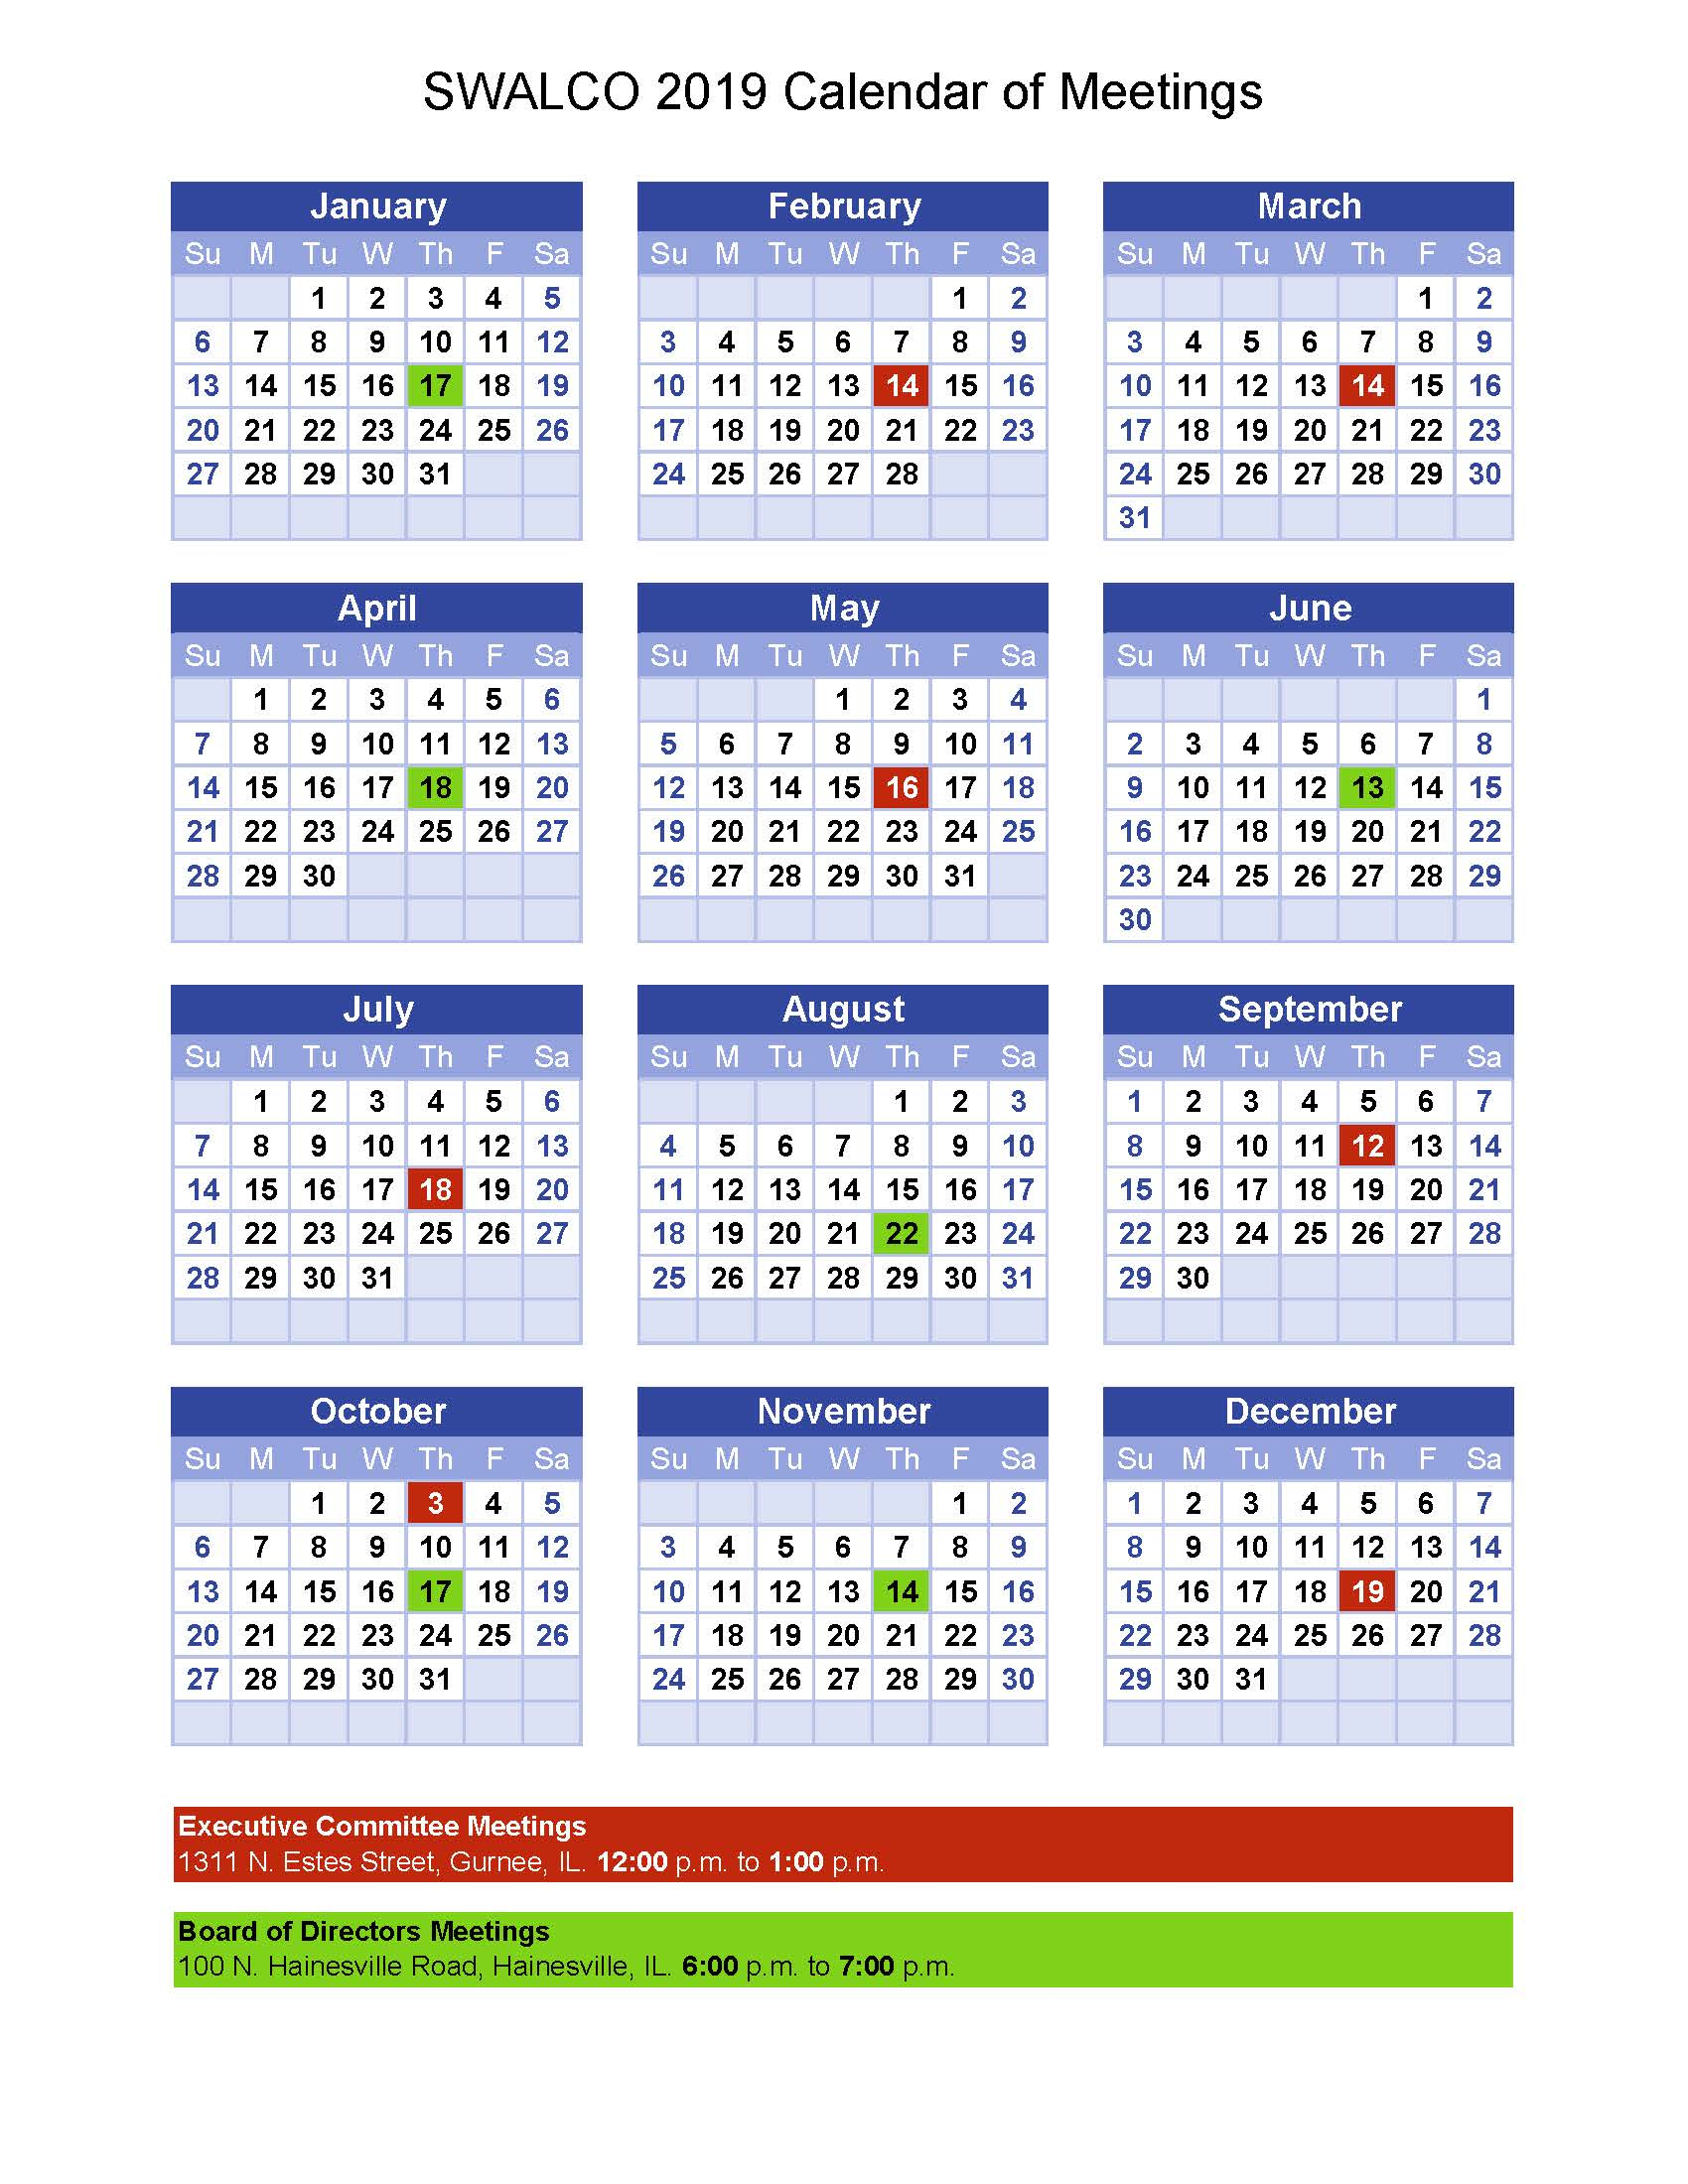 Approved Calendar of Mtgs Updated per BOD 10.18.18